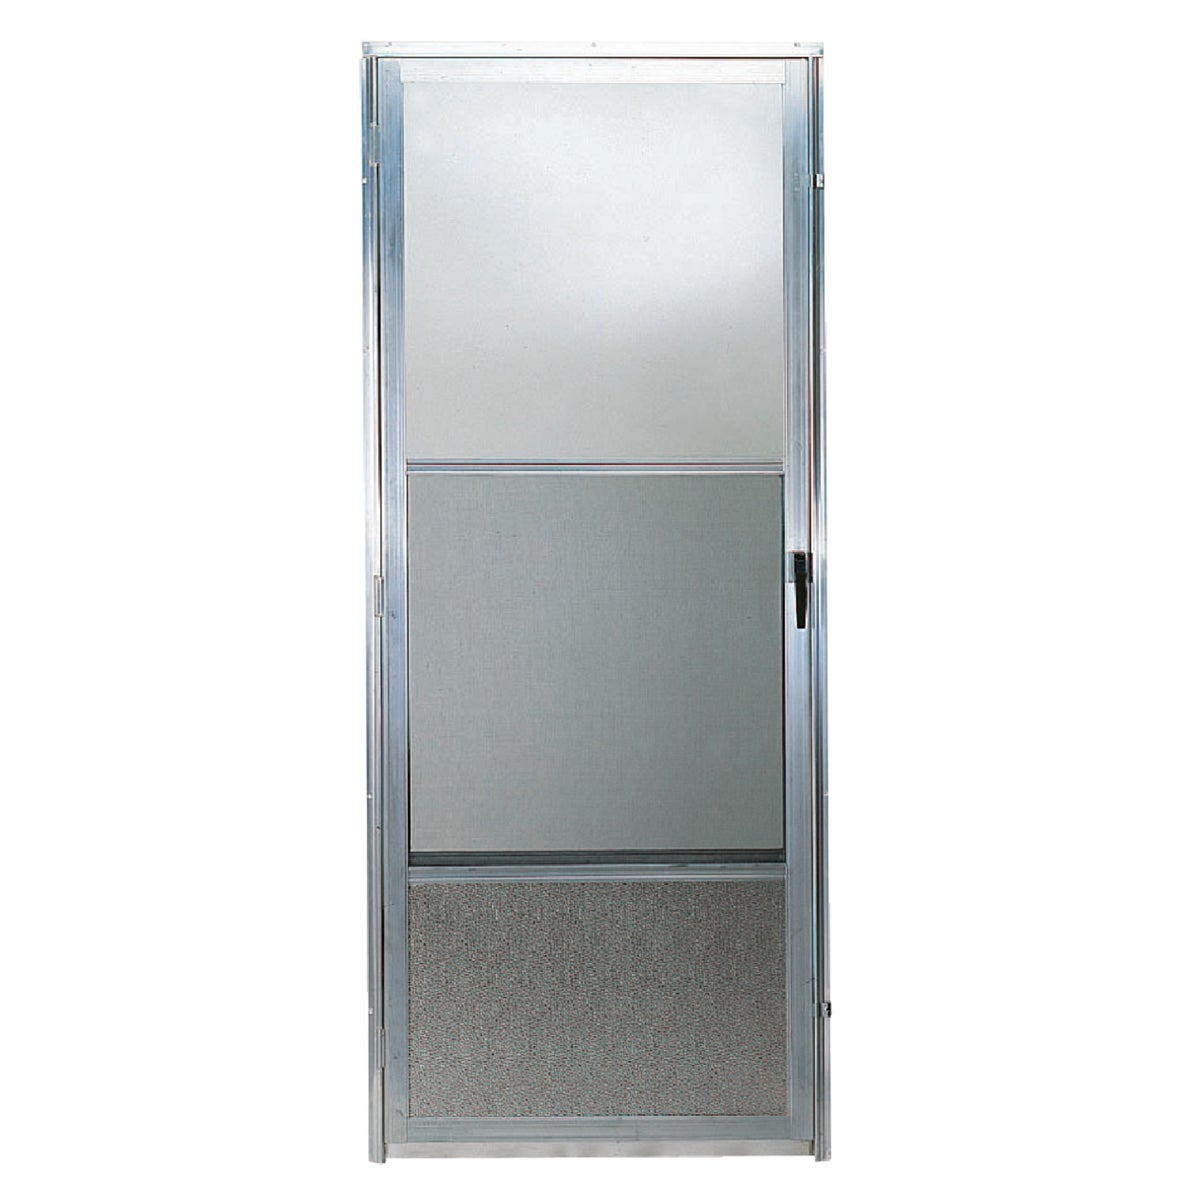 161 2868 LH MILL DOOR - F05746 by Croft Llc